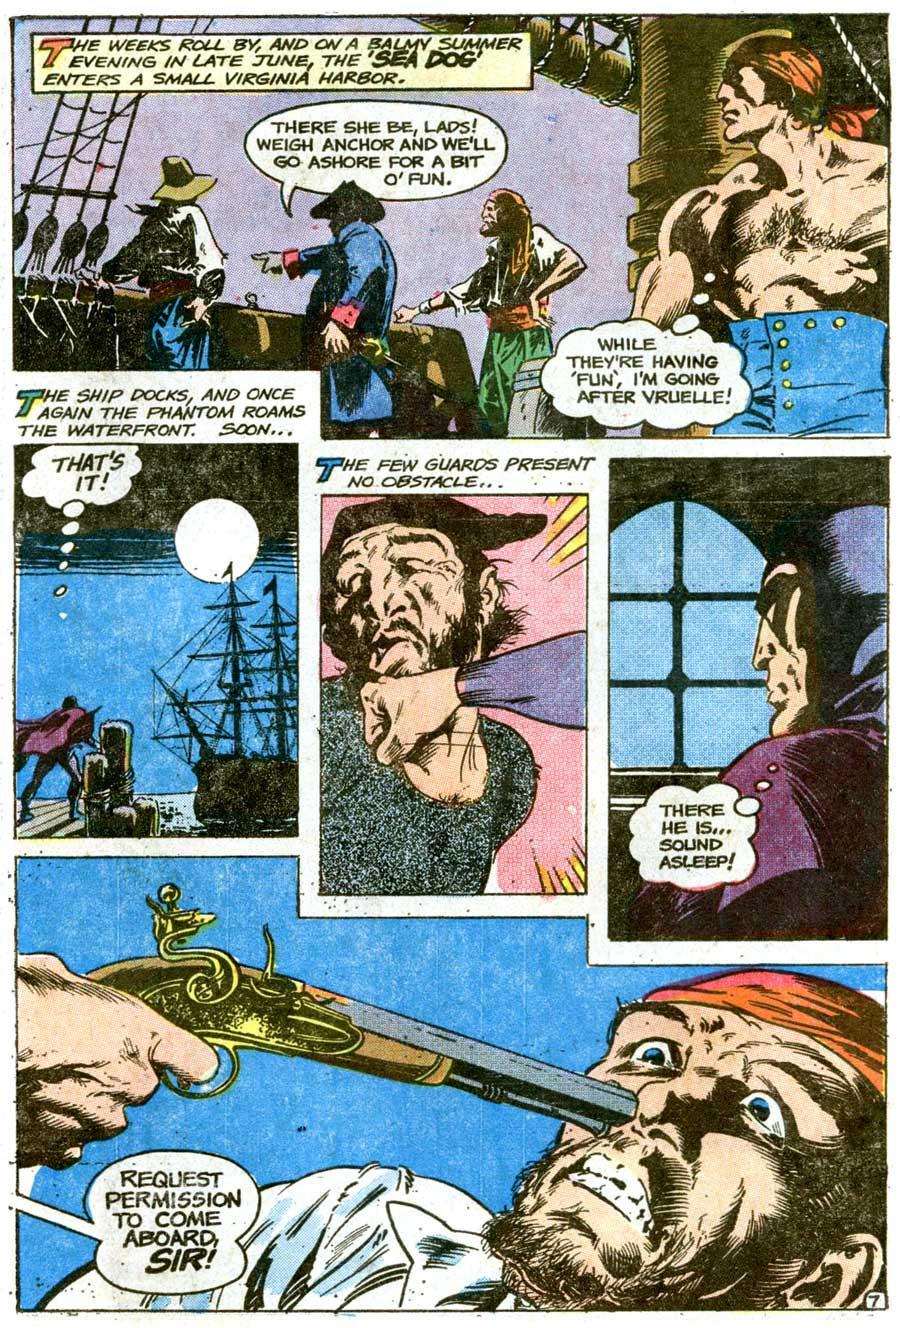 The Phantom v2 #74 charlton comic book page art by Don Newton